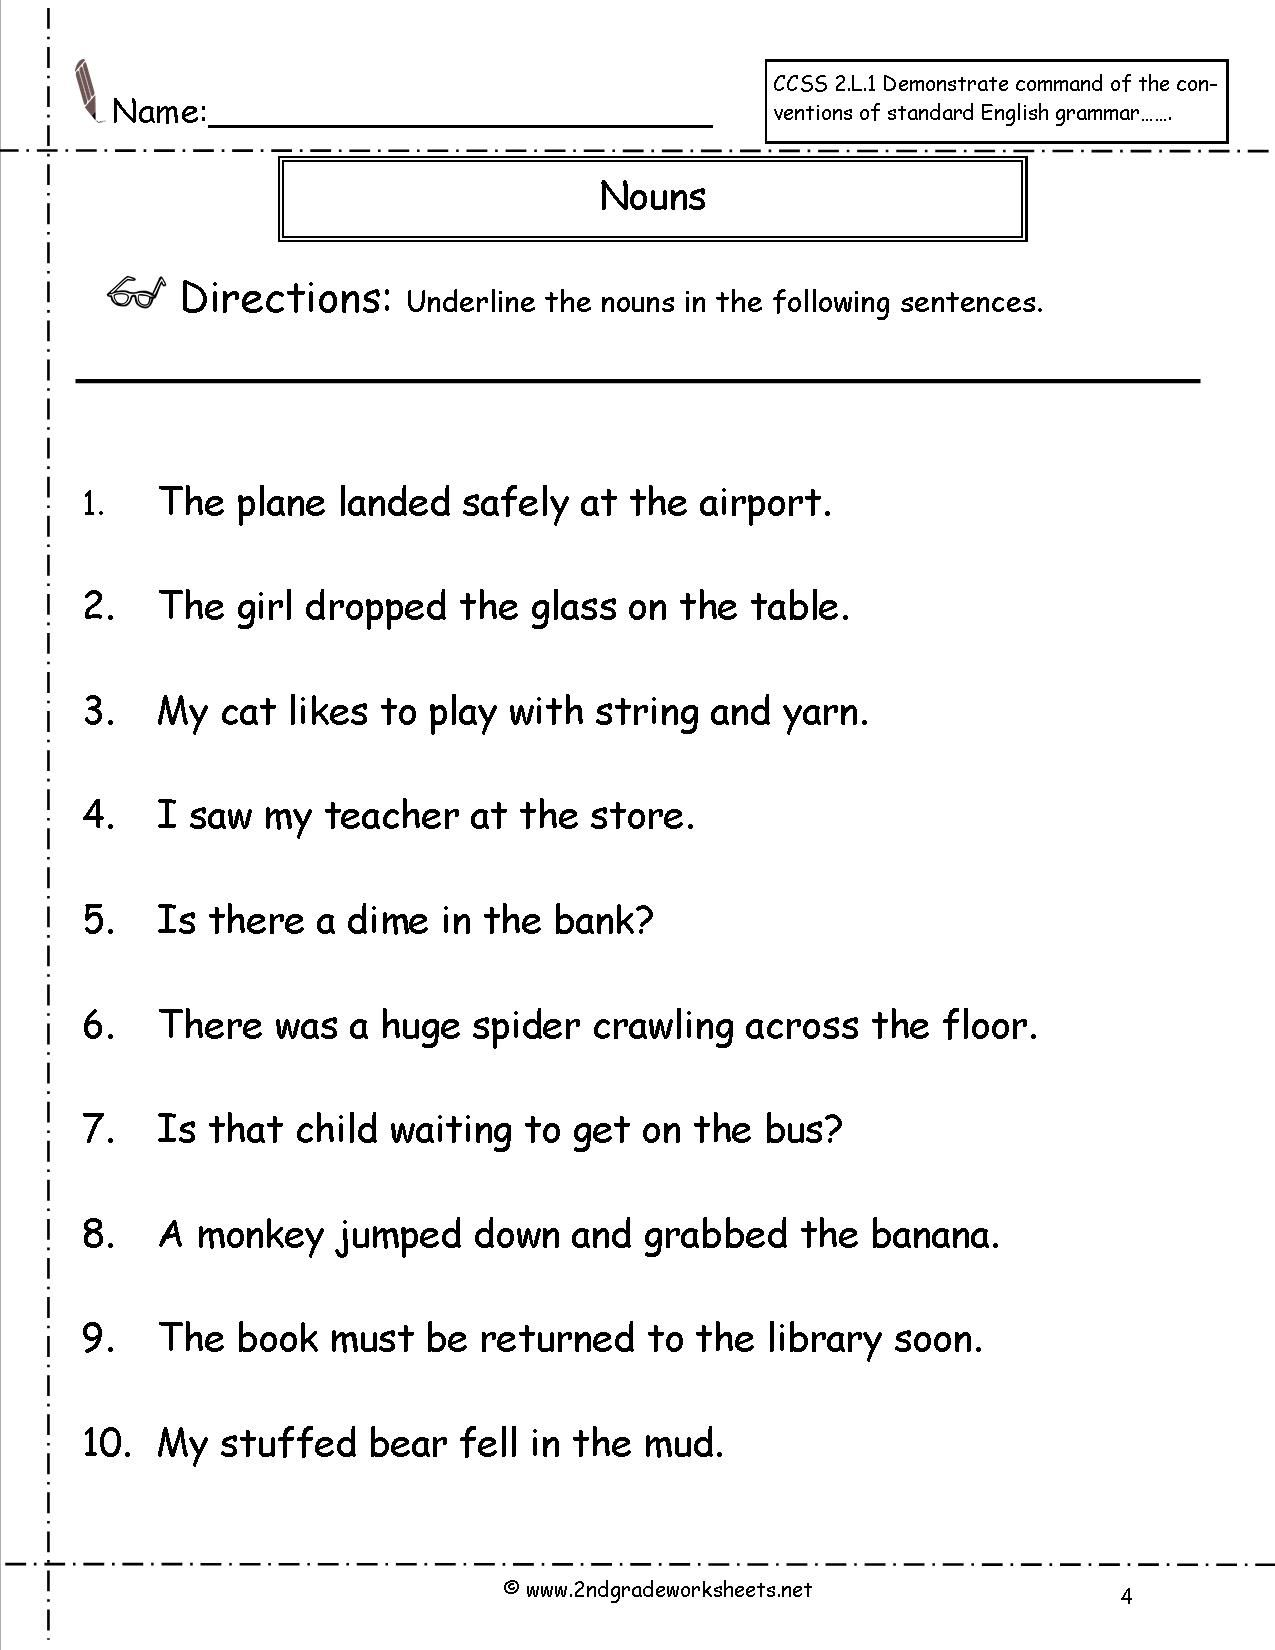 small resolution of nouns4.jpg (1275×1650)   Grammar worksheets